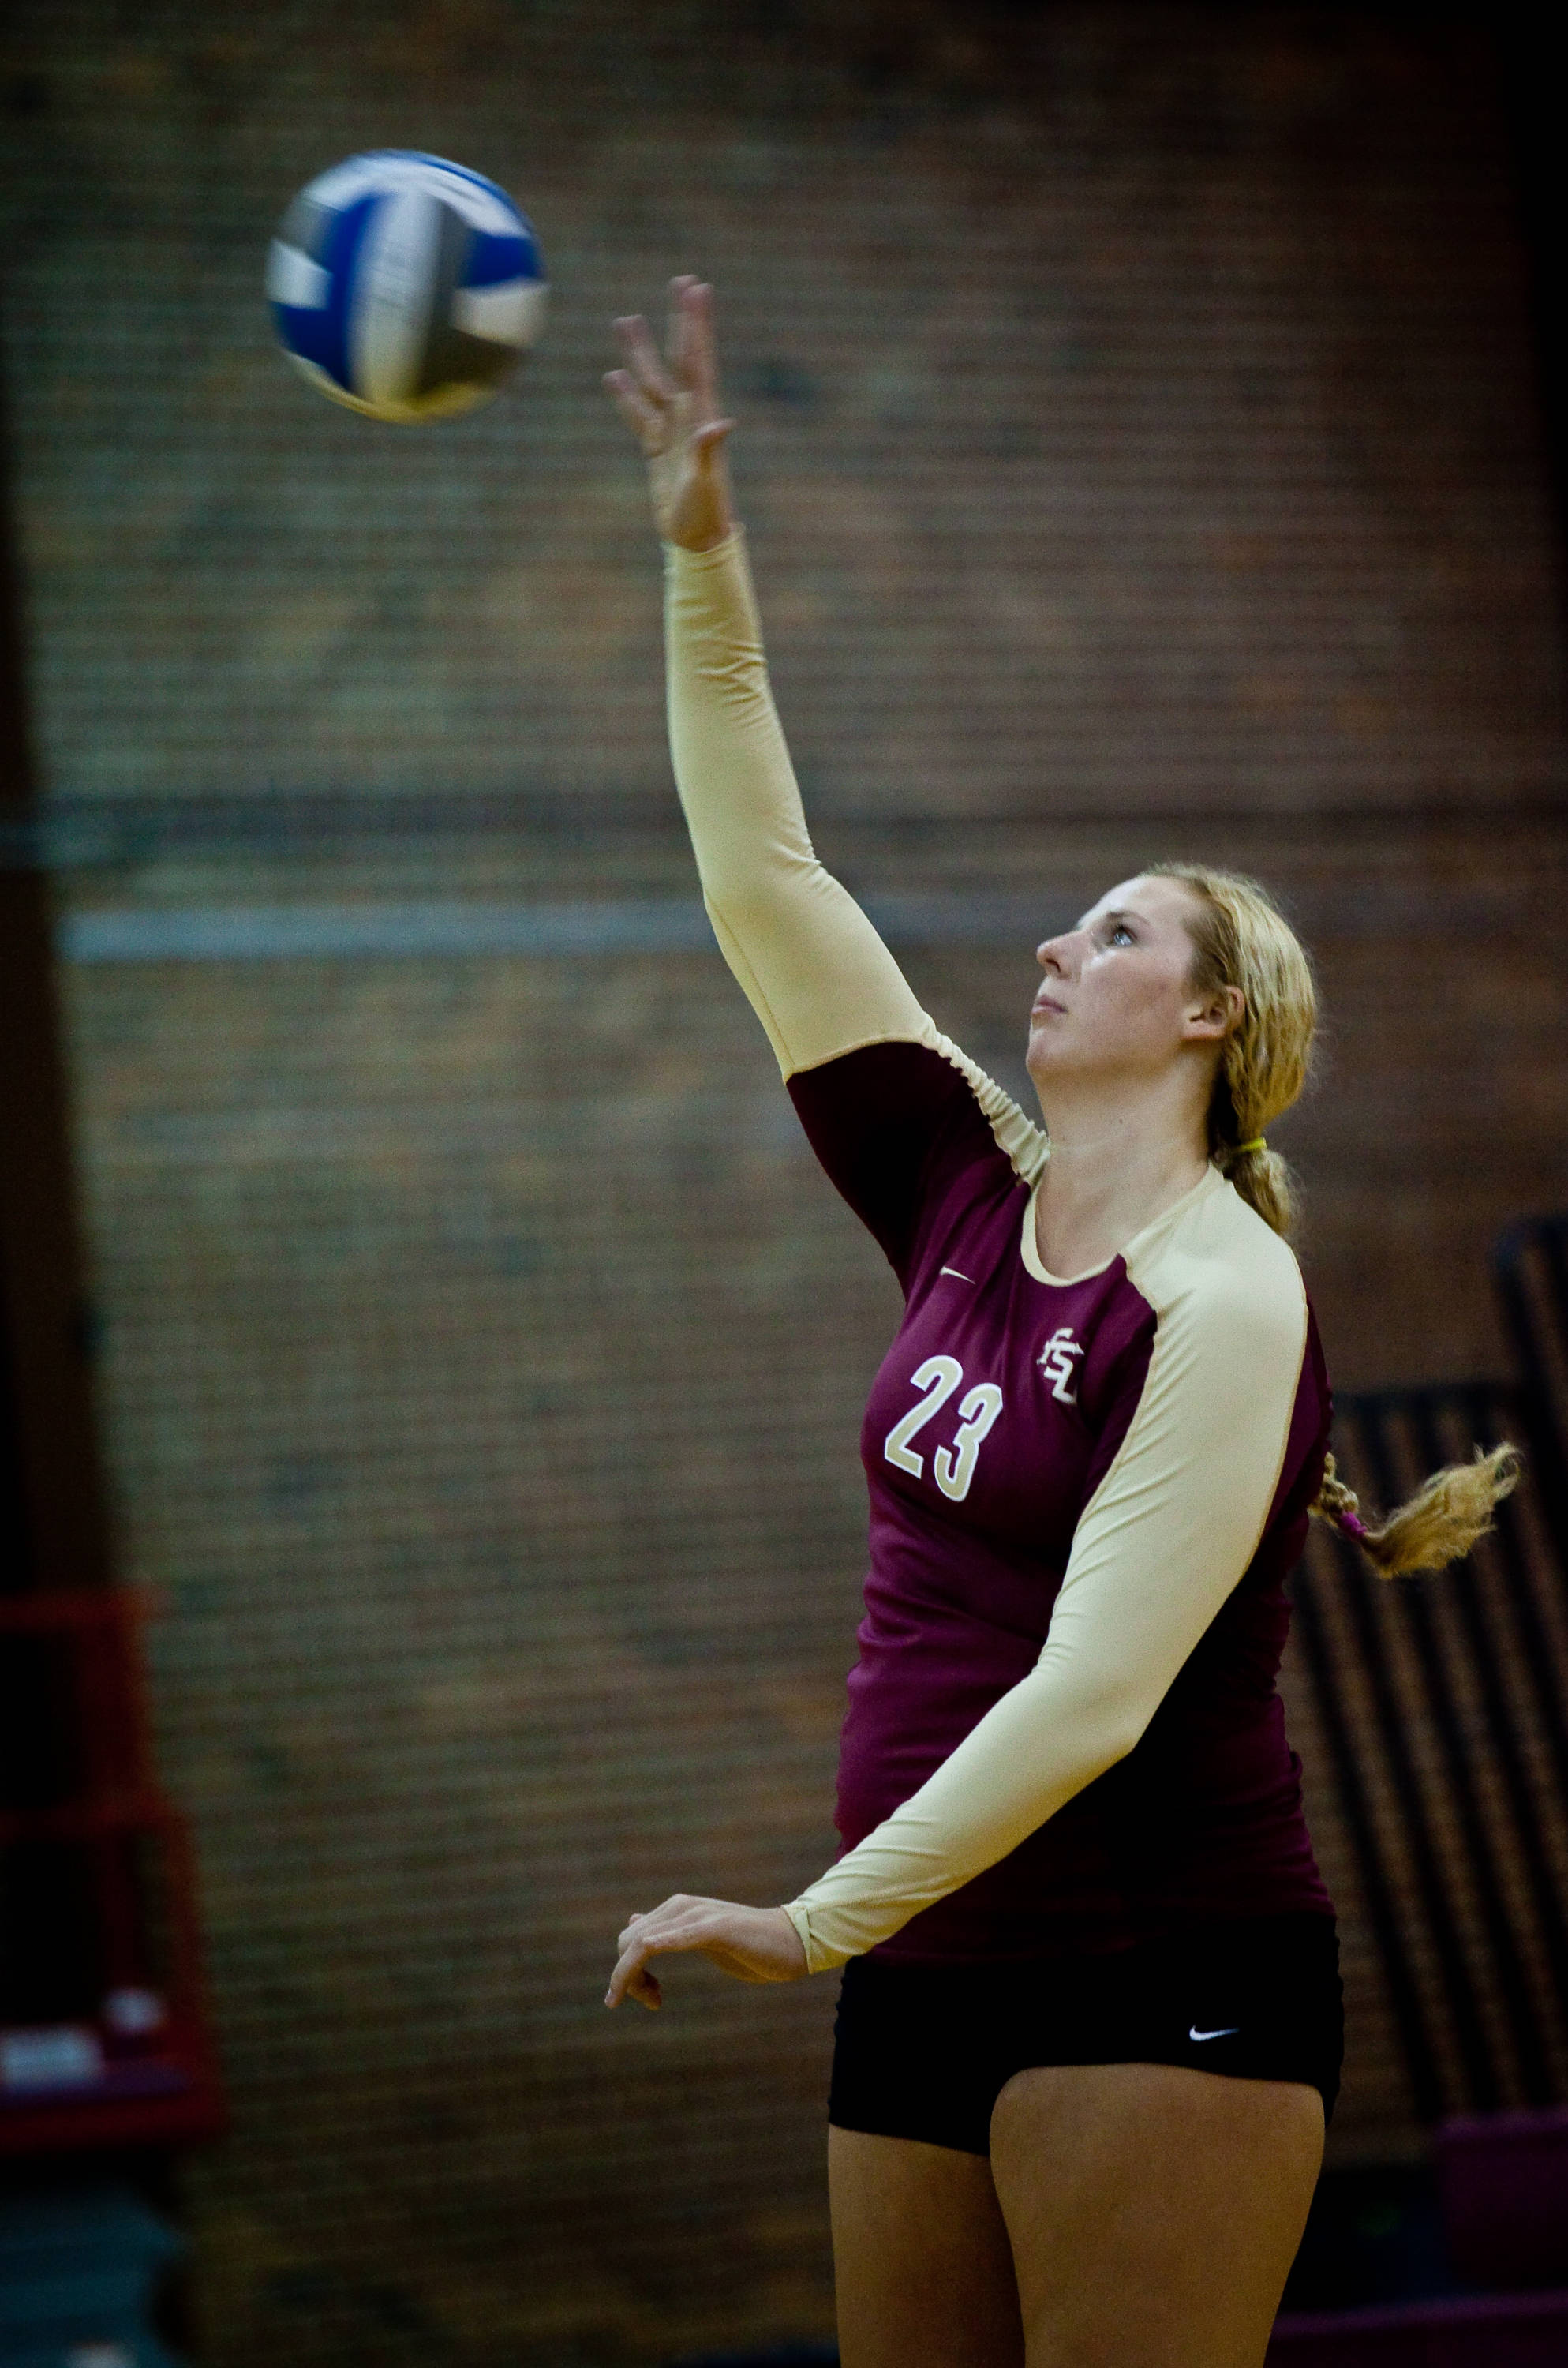 Elise Walch (23) records another serve.